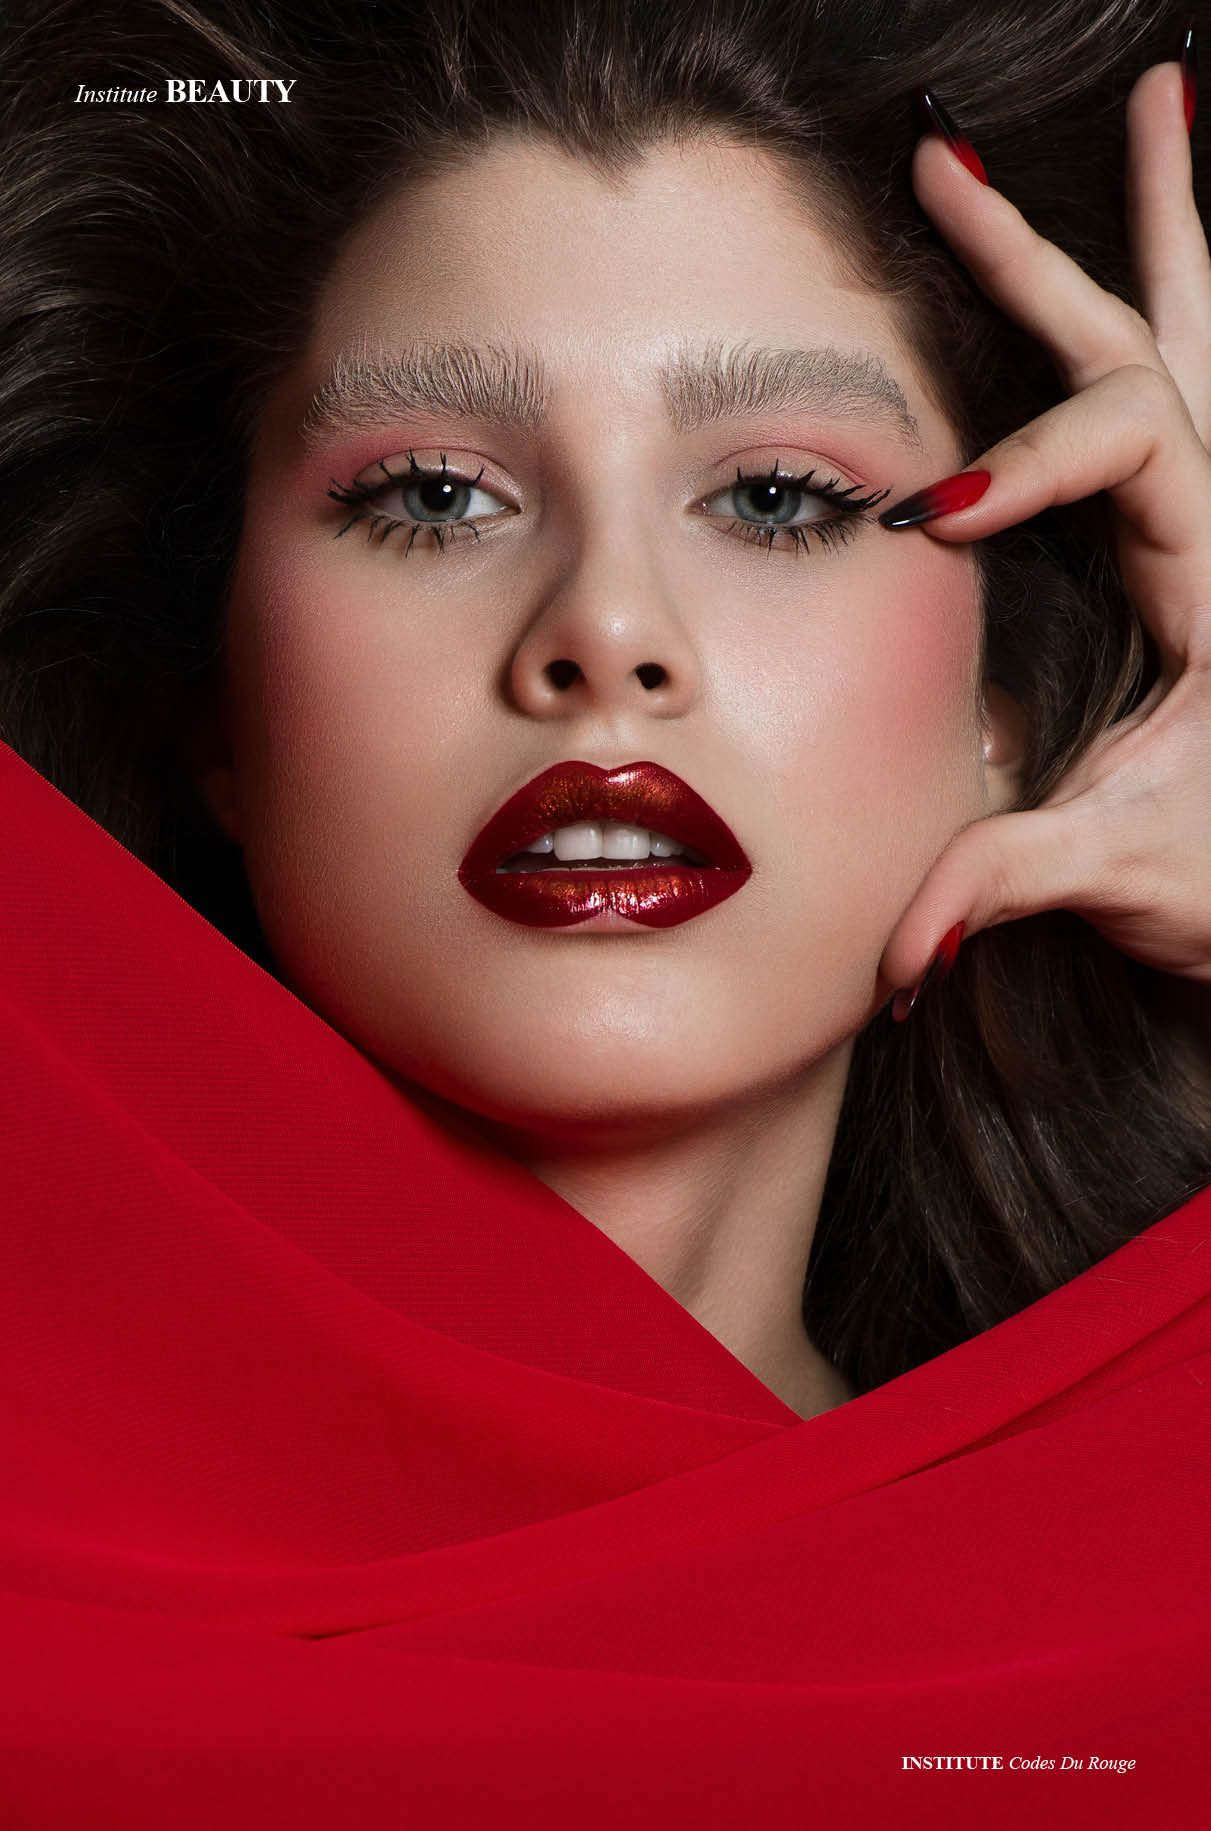 Codes Du Rouge Photographed by CĂLIN ANDREESCU Makeup